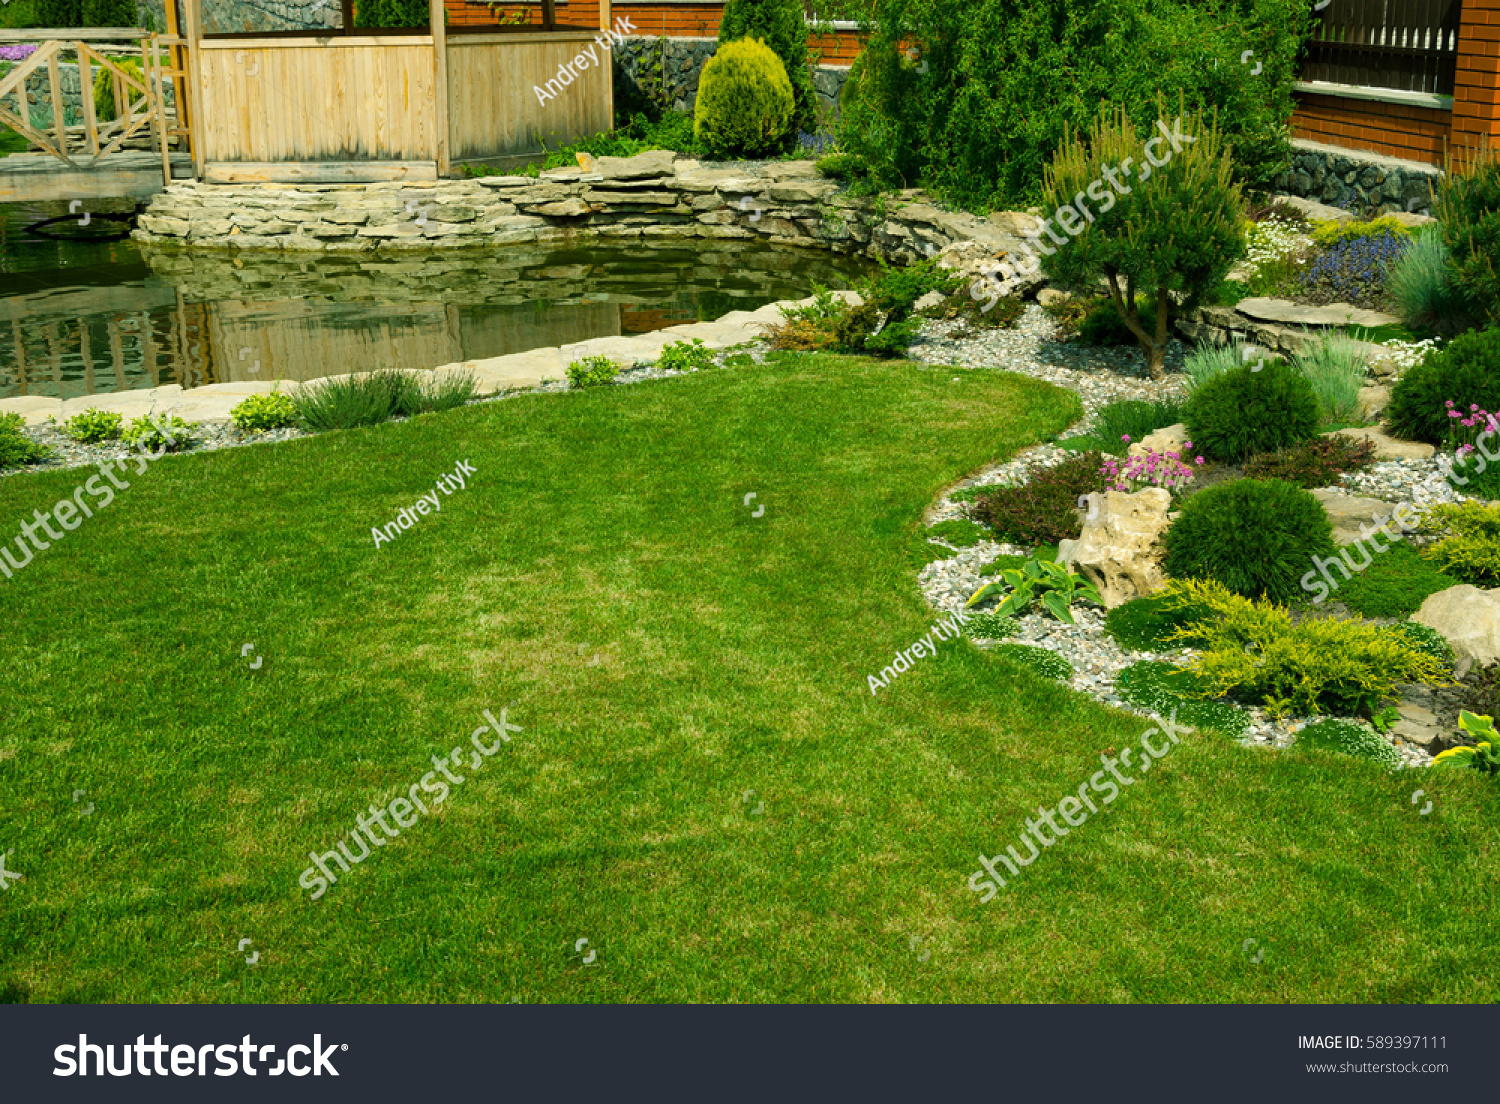 Green lawn colorful landscaped formal gardendetail stock for Formally designed lawn